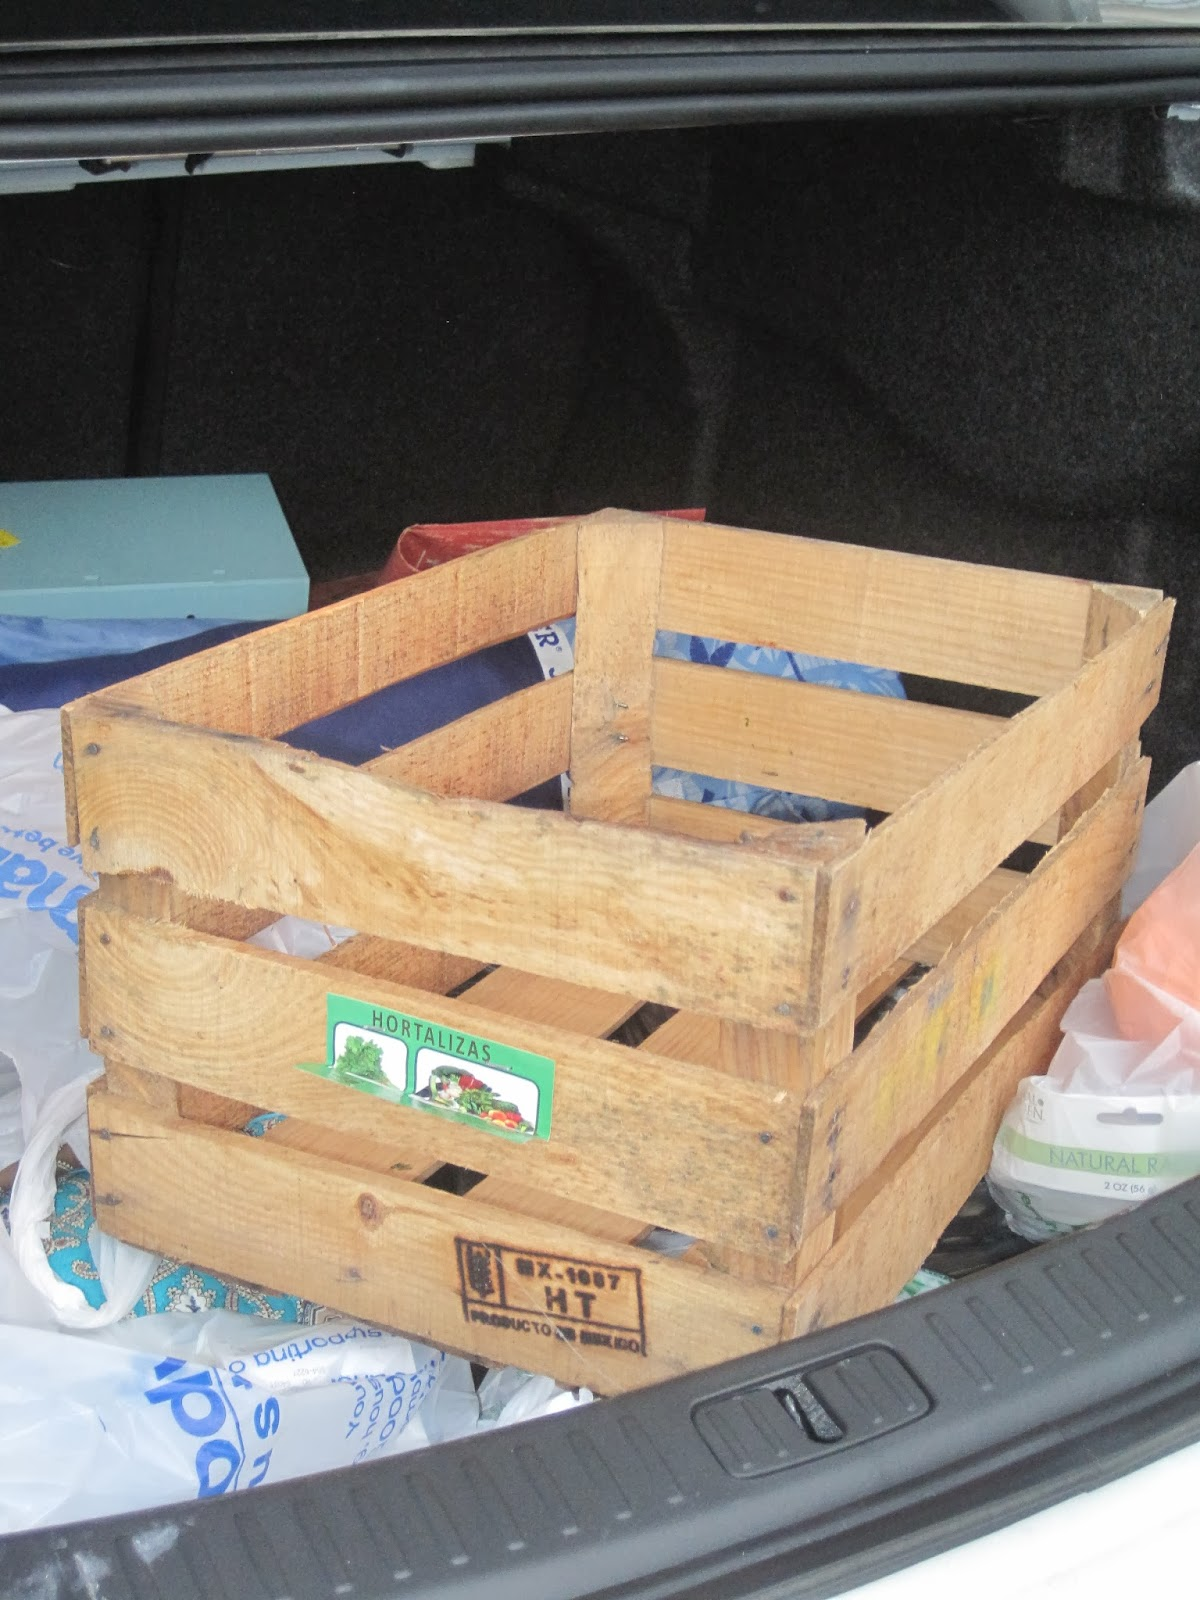 http://decoratedchaos.blogspot.com/2013/10/curbside-rescue-crate-makeover-reveal.html